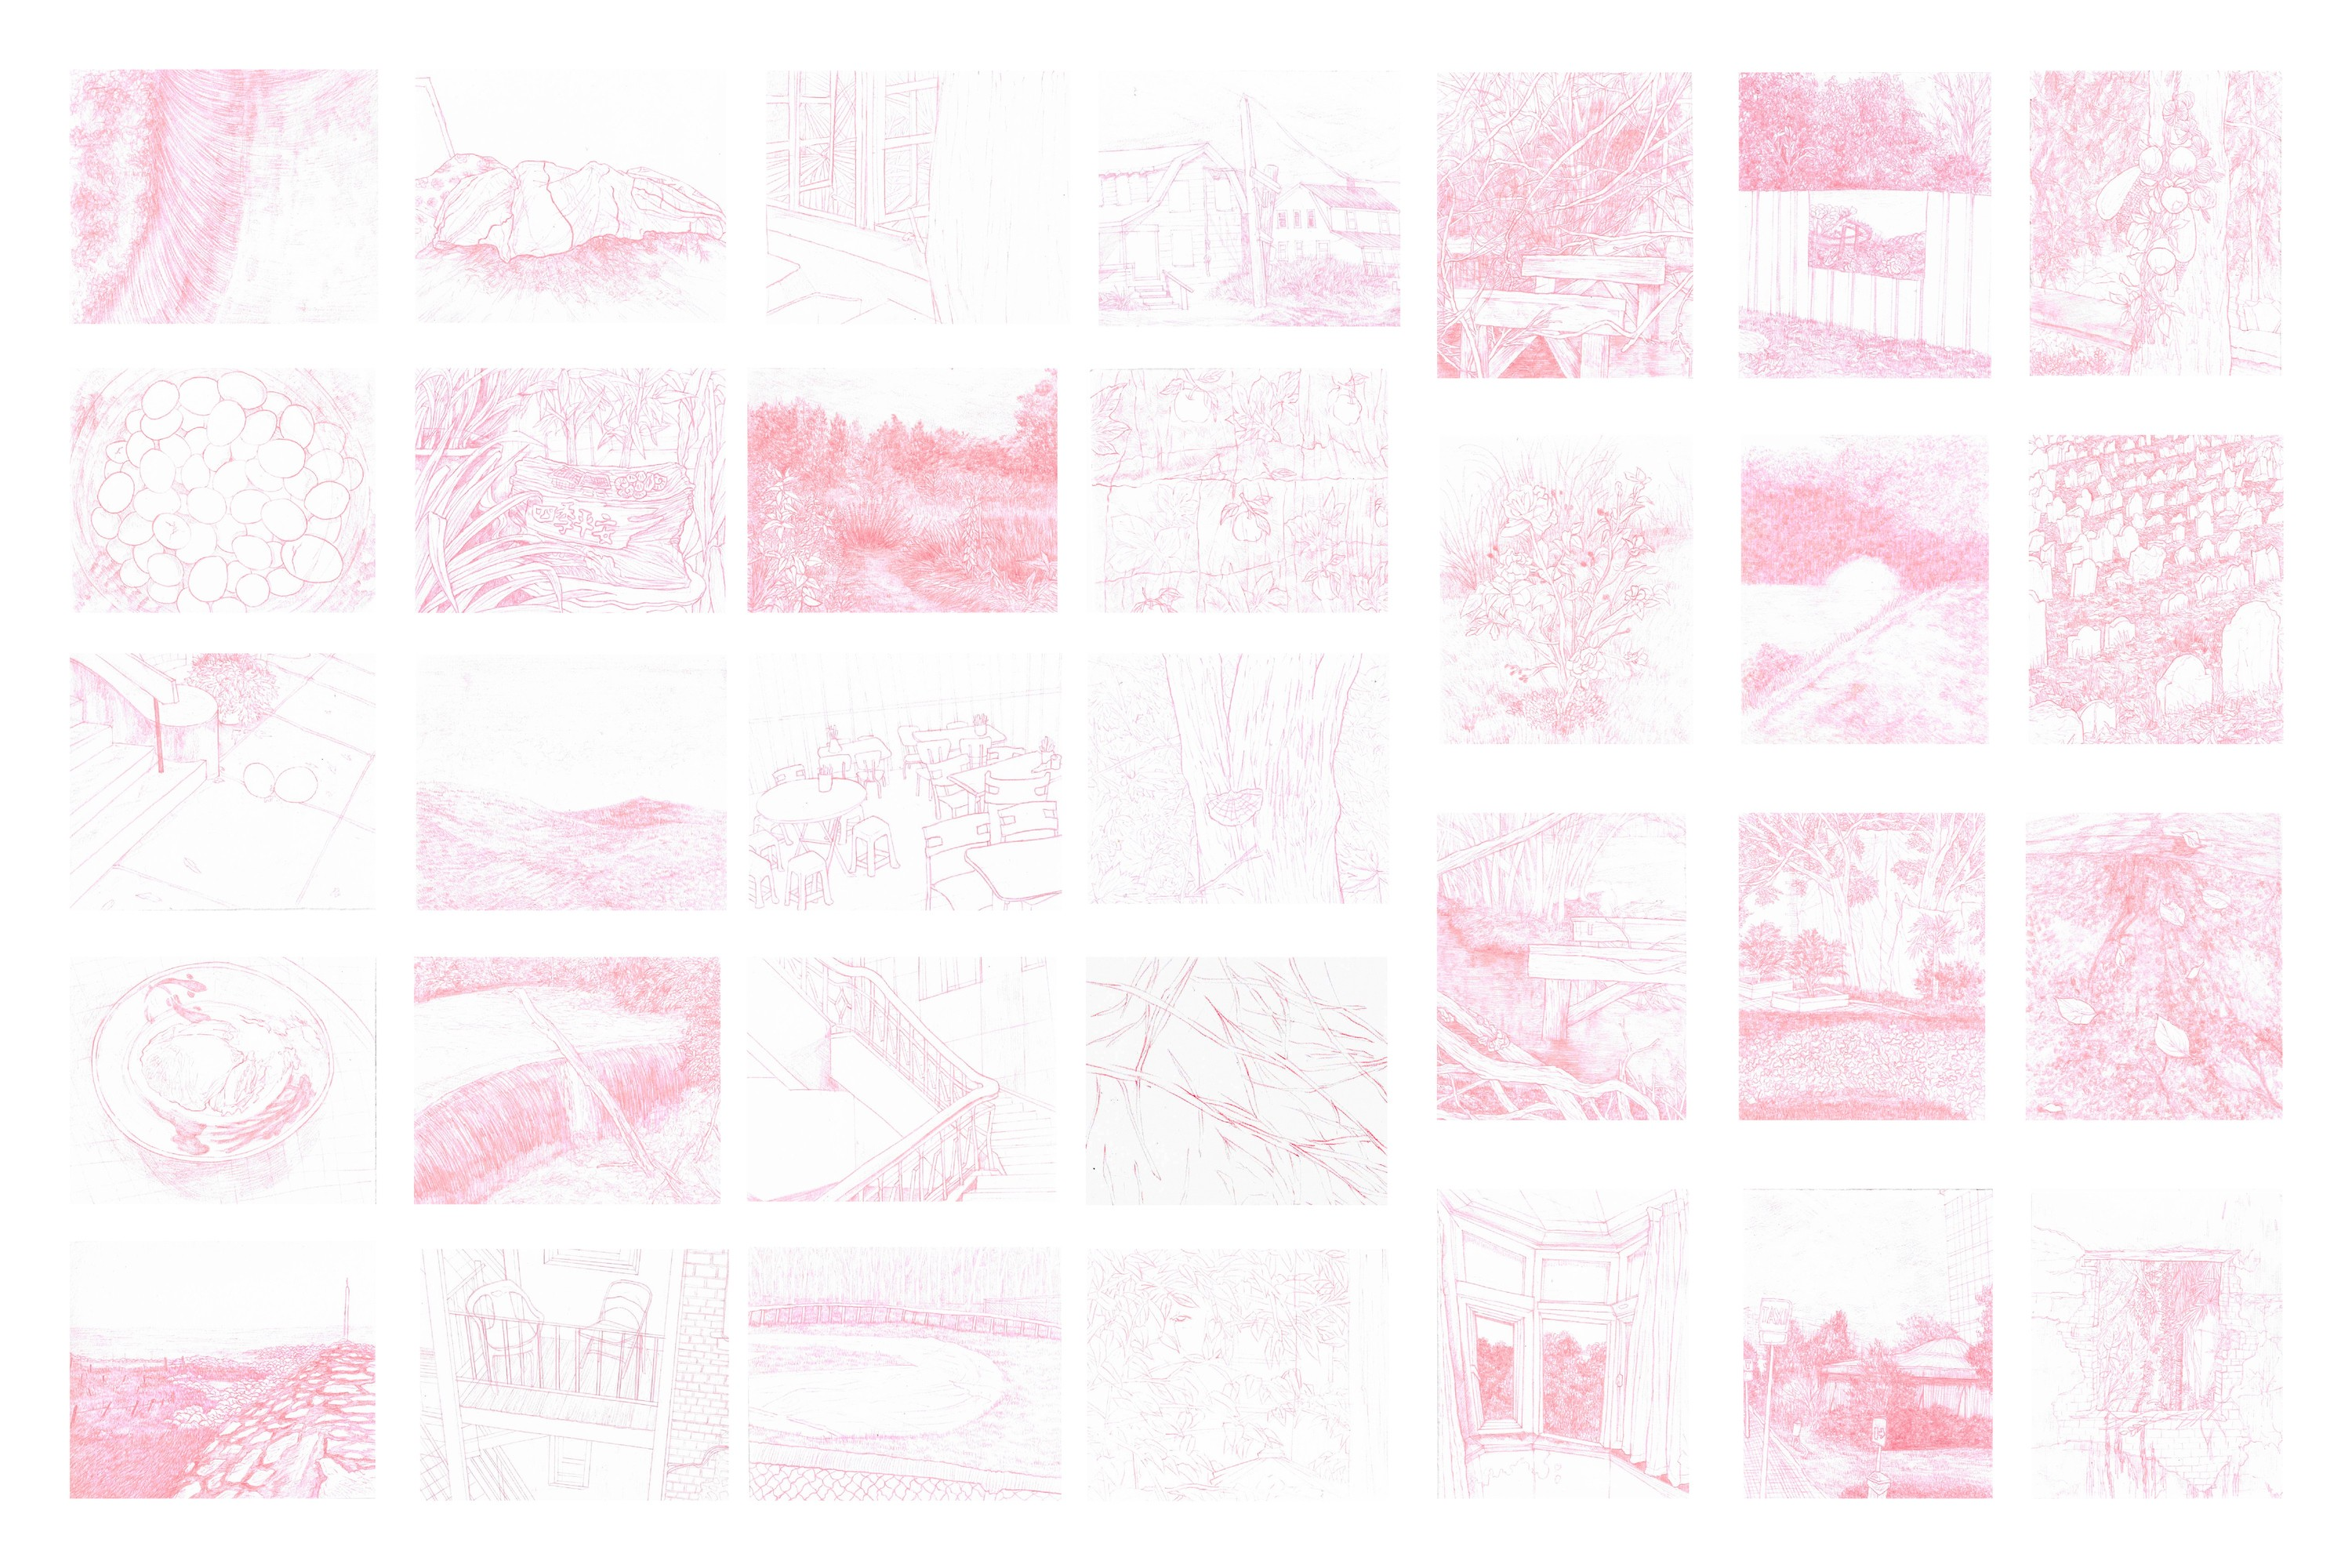 drawings of landscape and objects